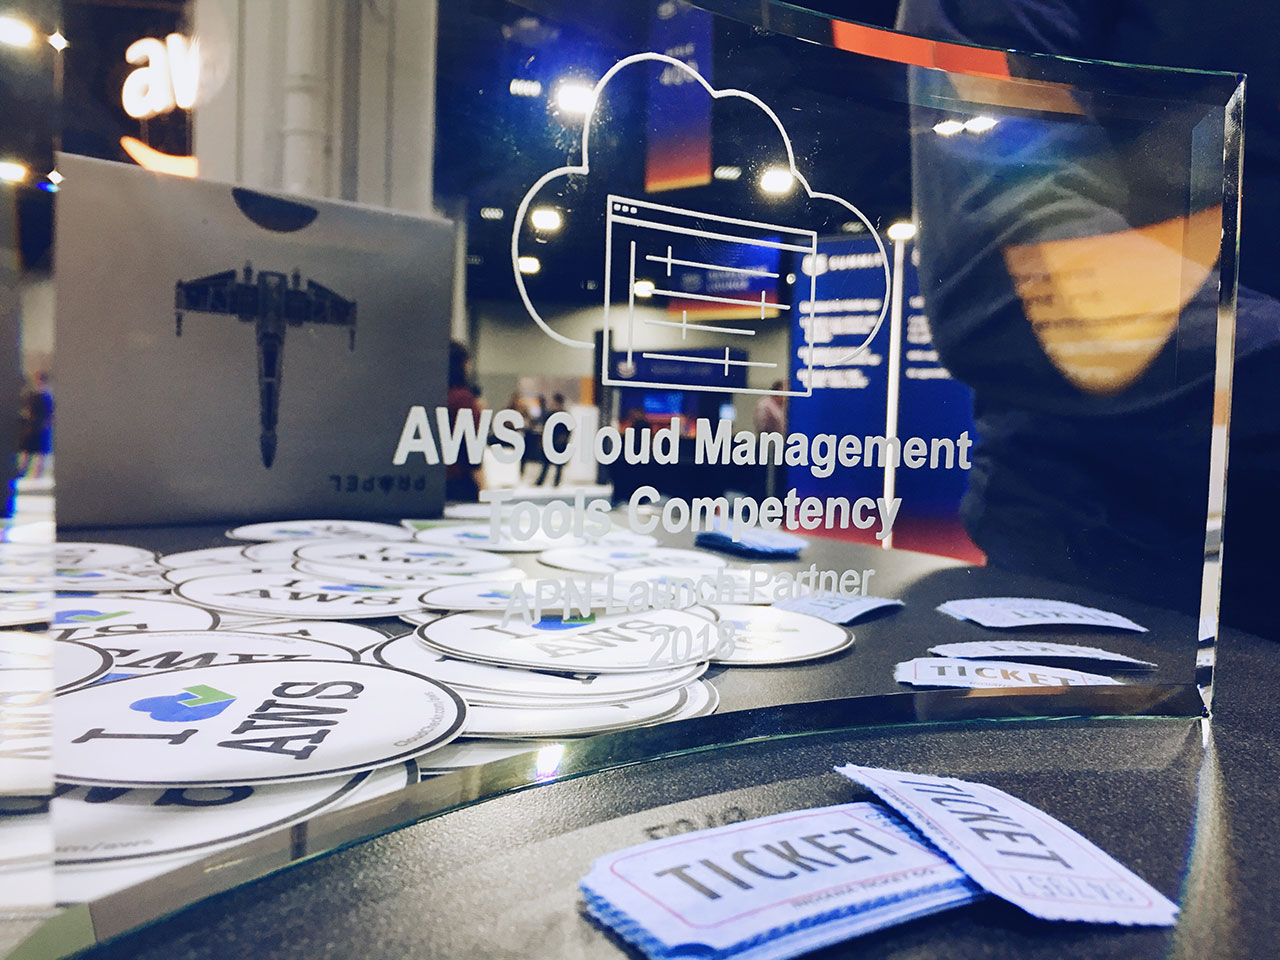 CloudCheckr Achieves AWS Competency Status for Cloud Management Tools in Cloud Governance and Cost Optimization